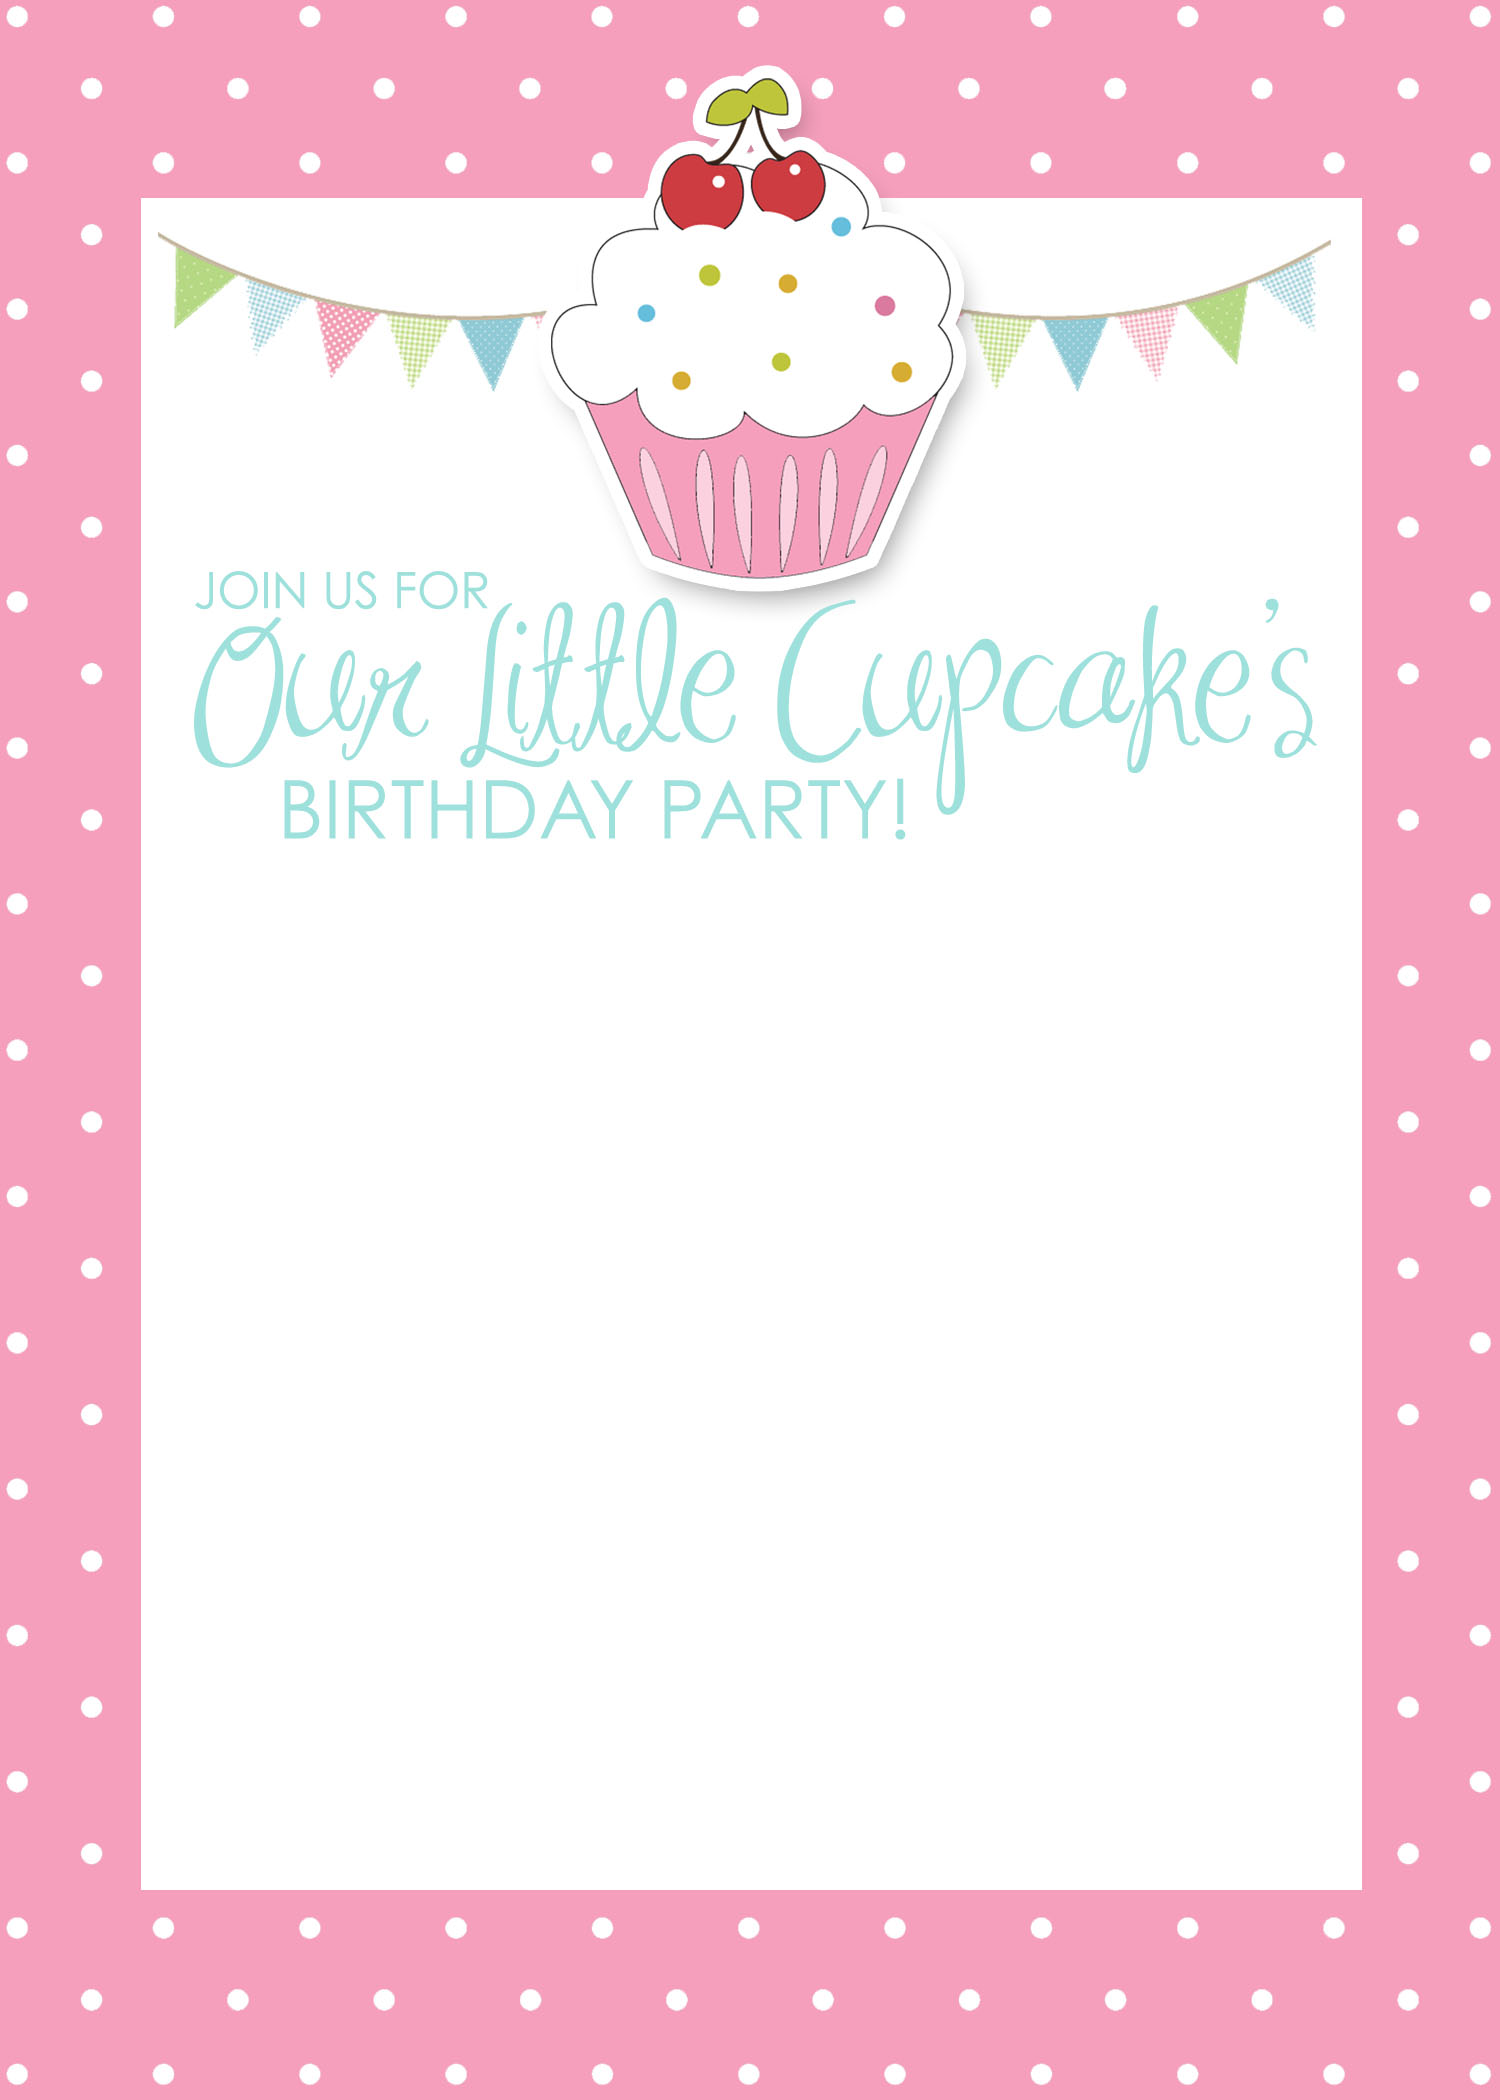 happy birthday invitation template free ; cupcake-birthday-invitations-for-your-extraordinary-Birthday-Invitation-Templates-associated-with-beautiful-sight-using-a-adorable-design-3